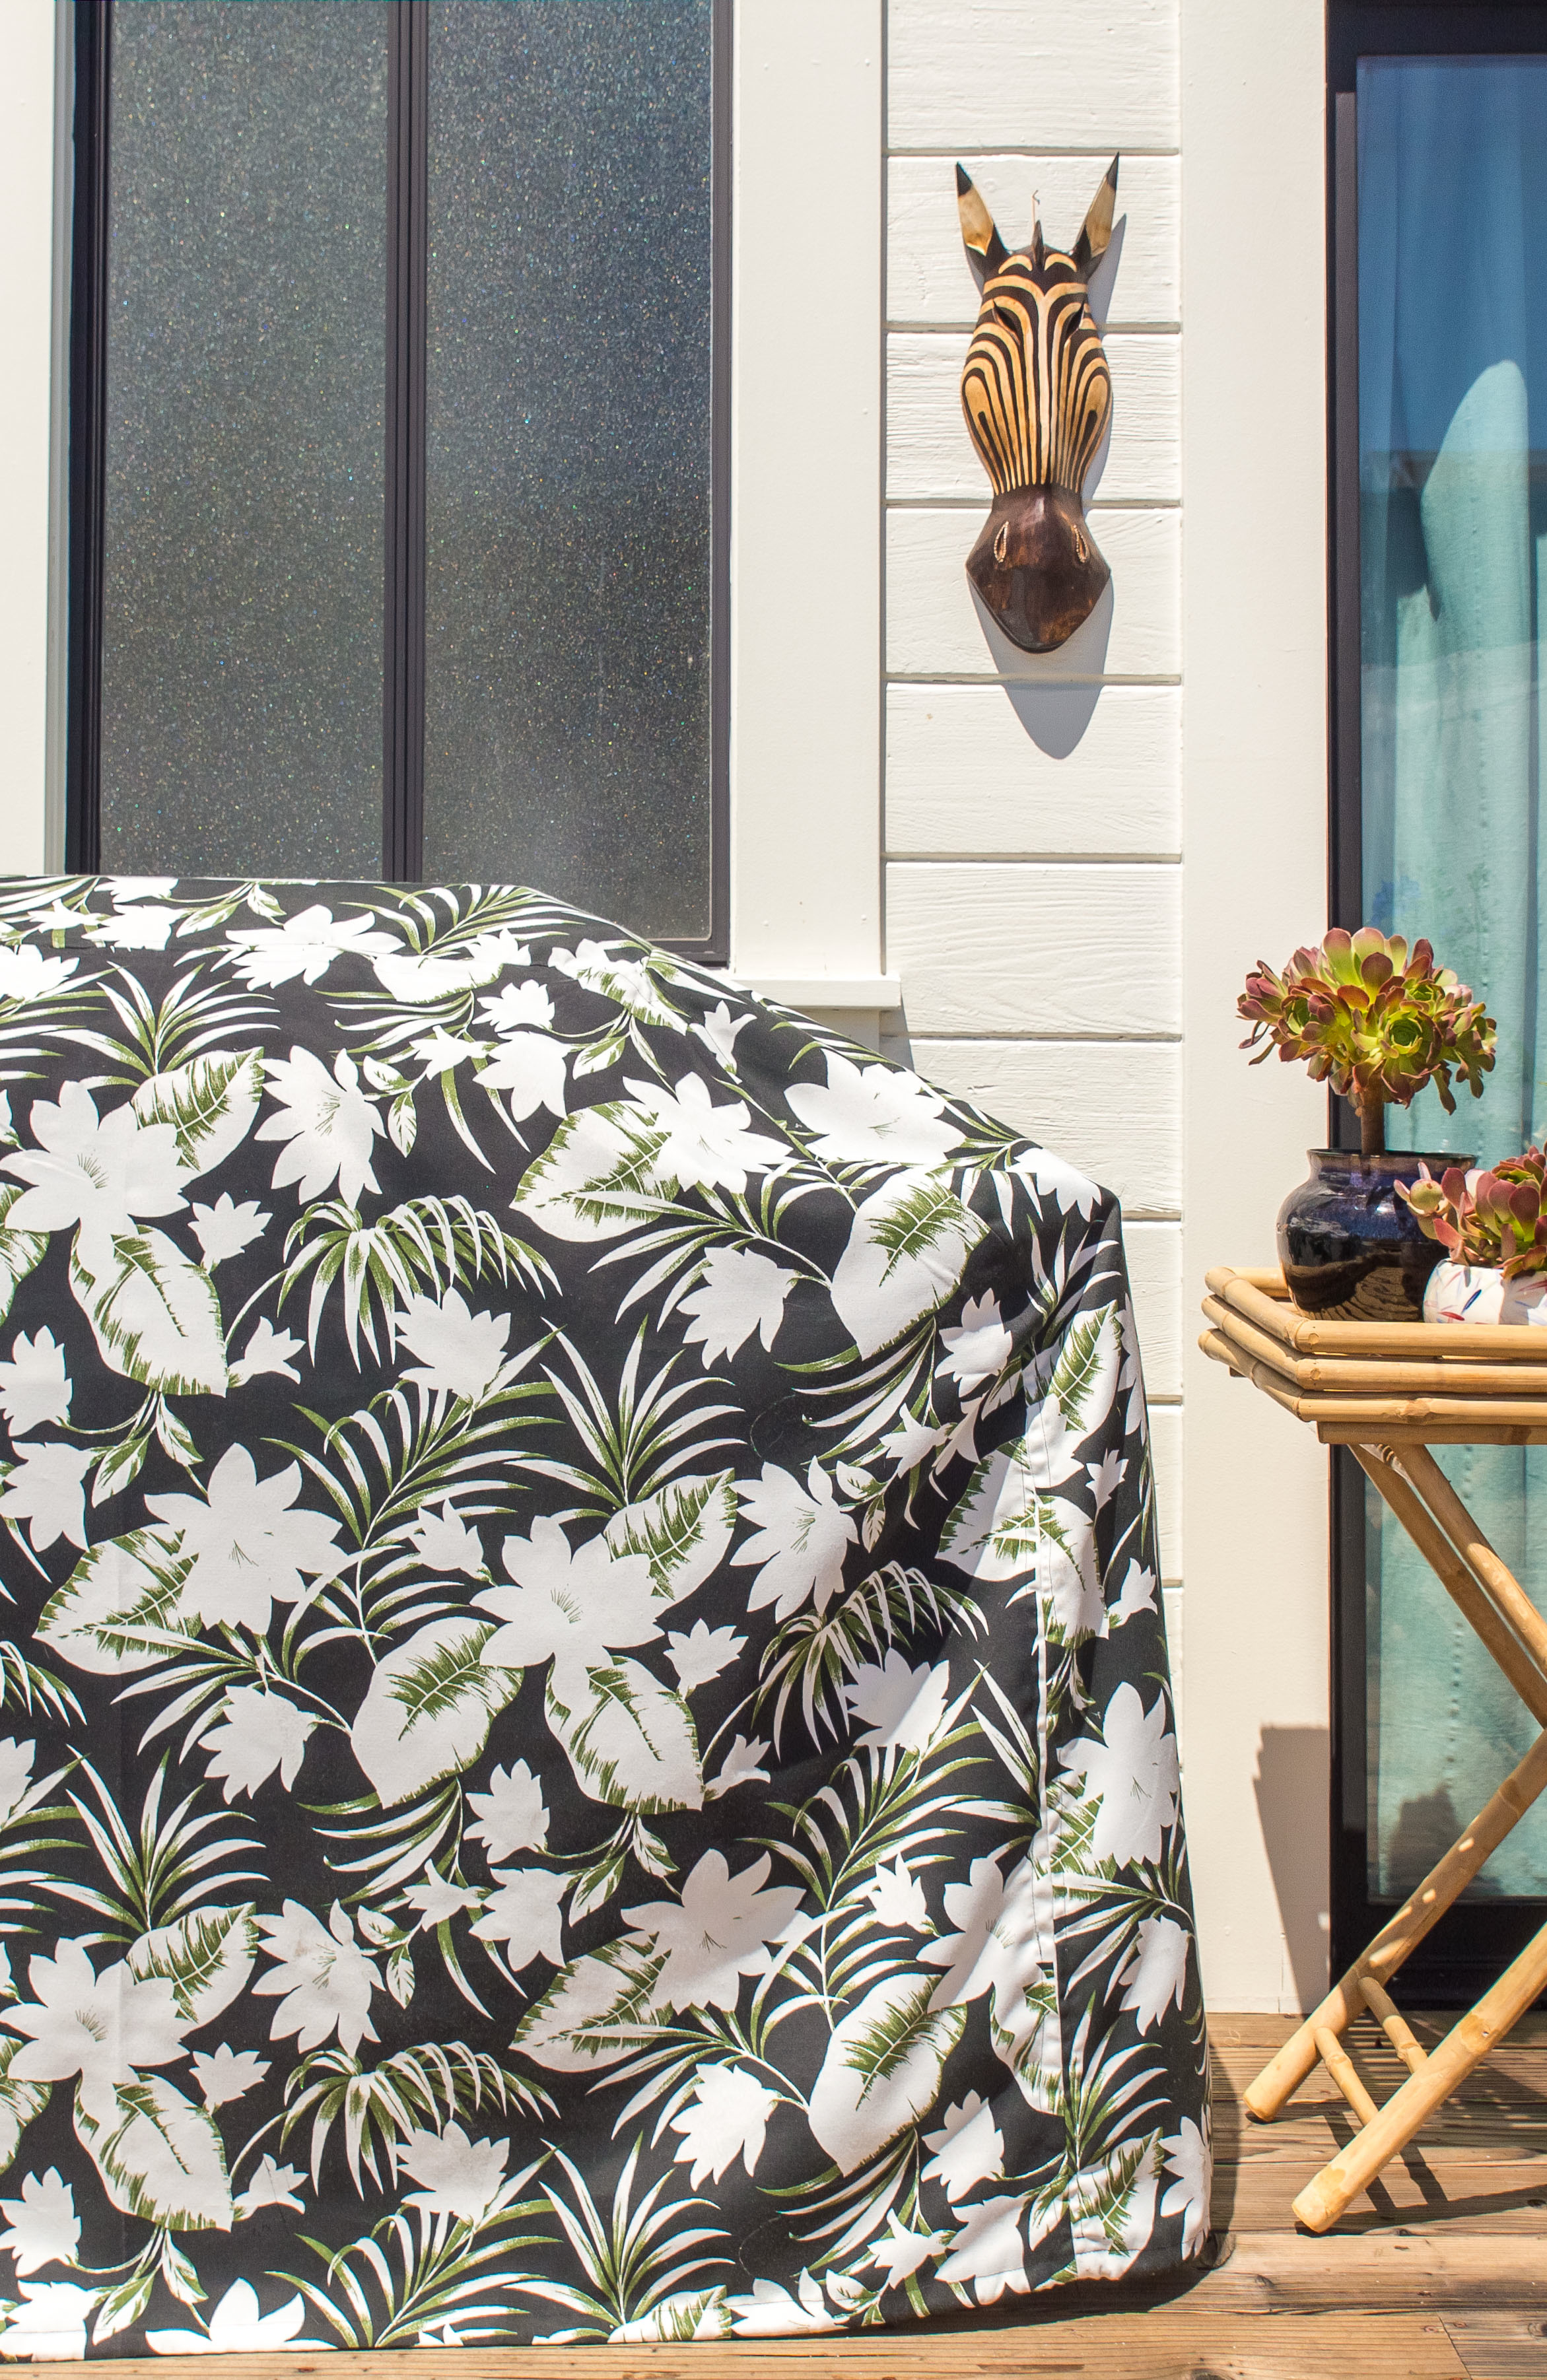 grill cover and zebra.jpg